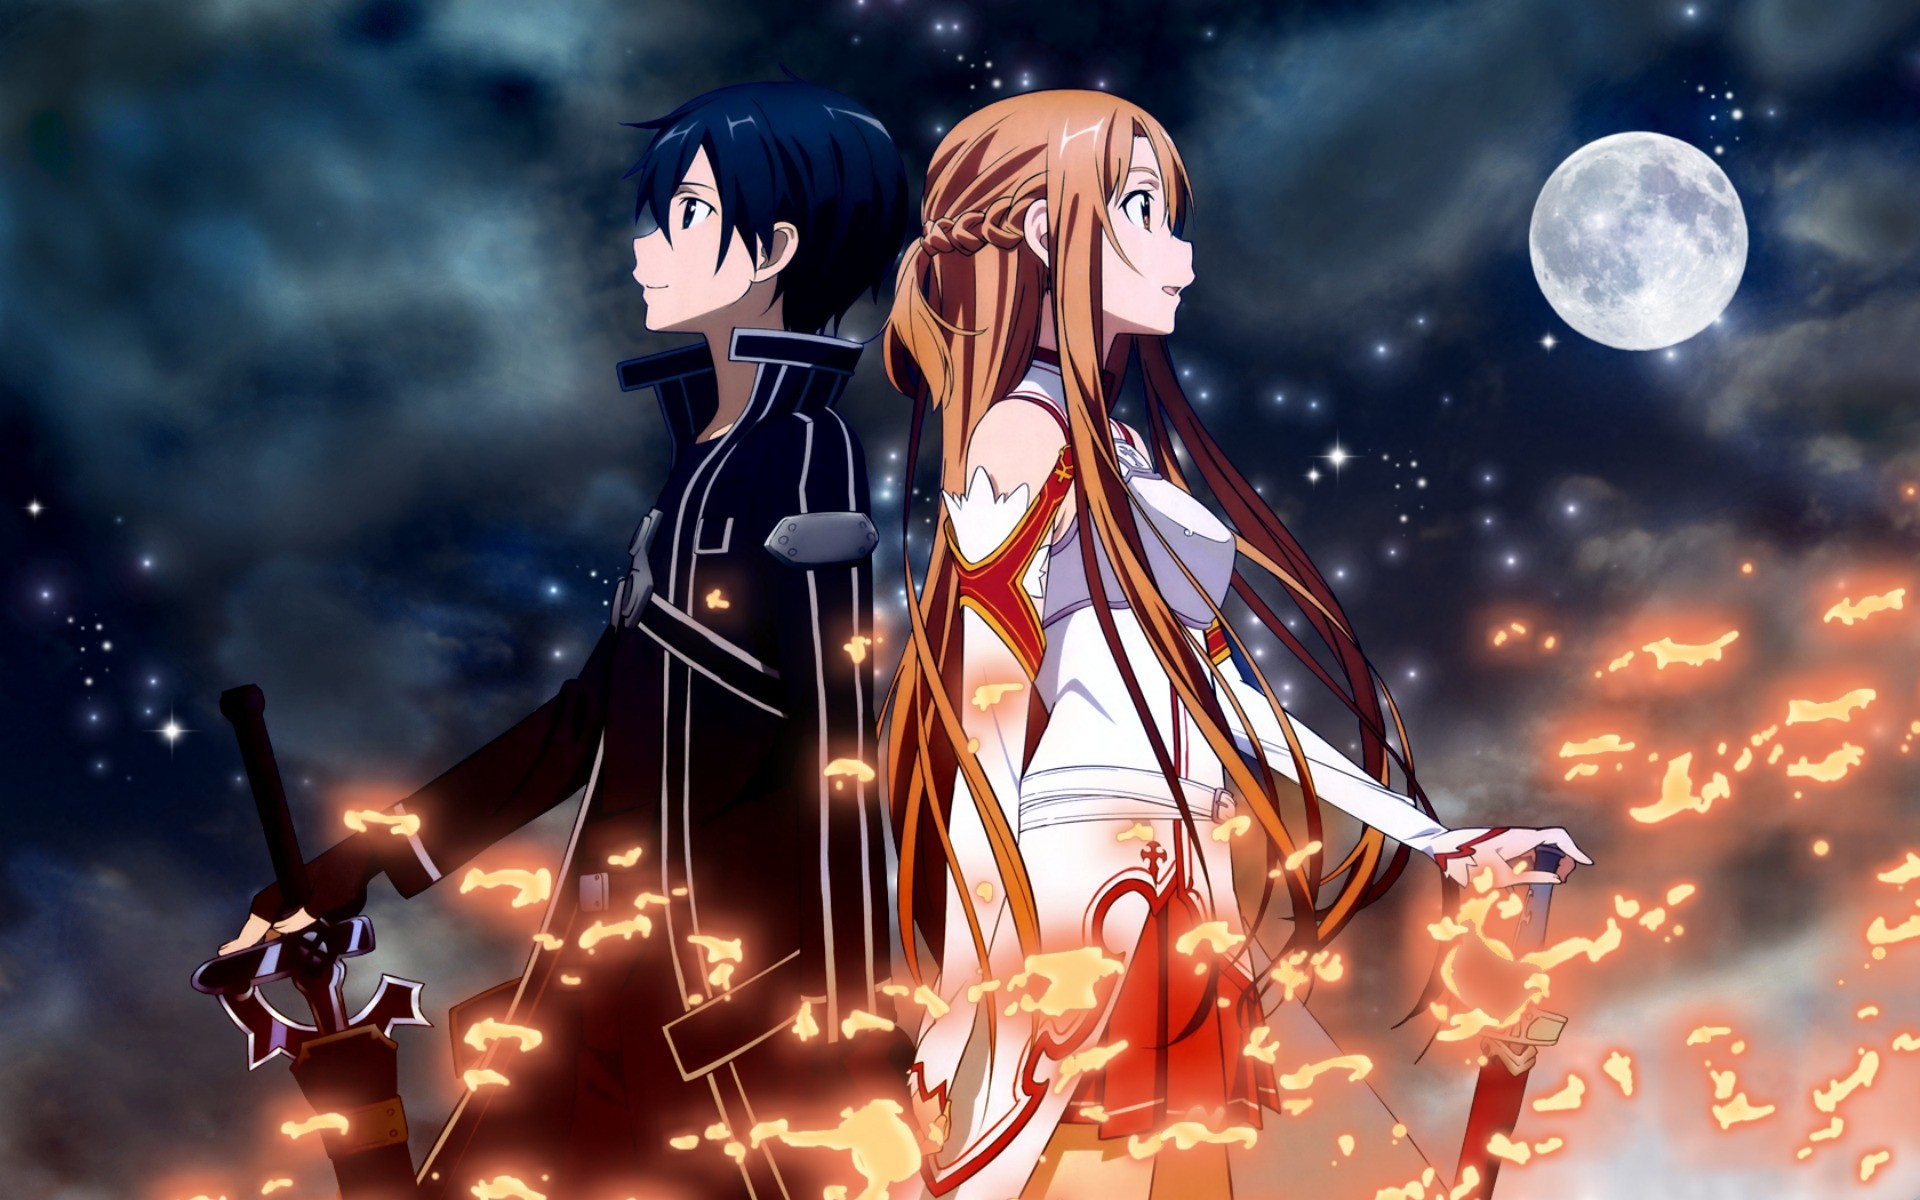 Sword Art Online images SAO HD wallpaper and background photos .